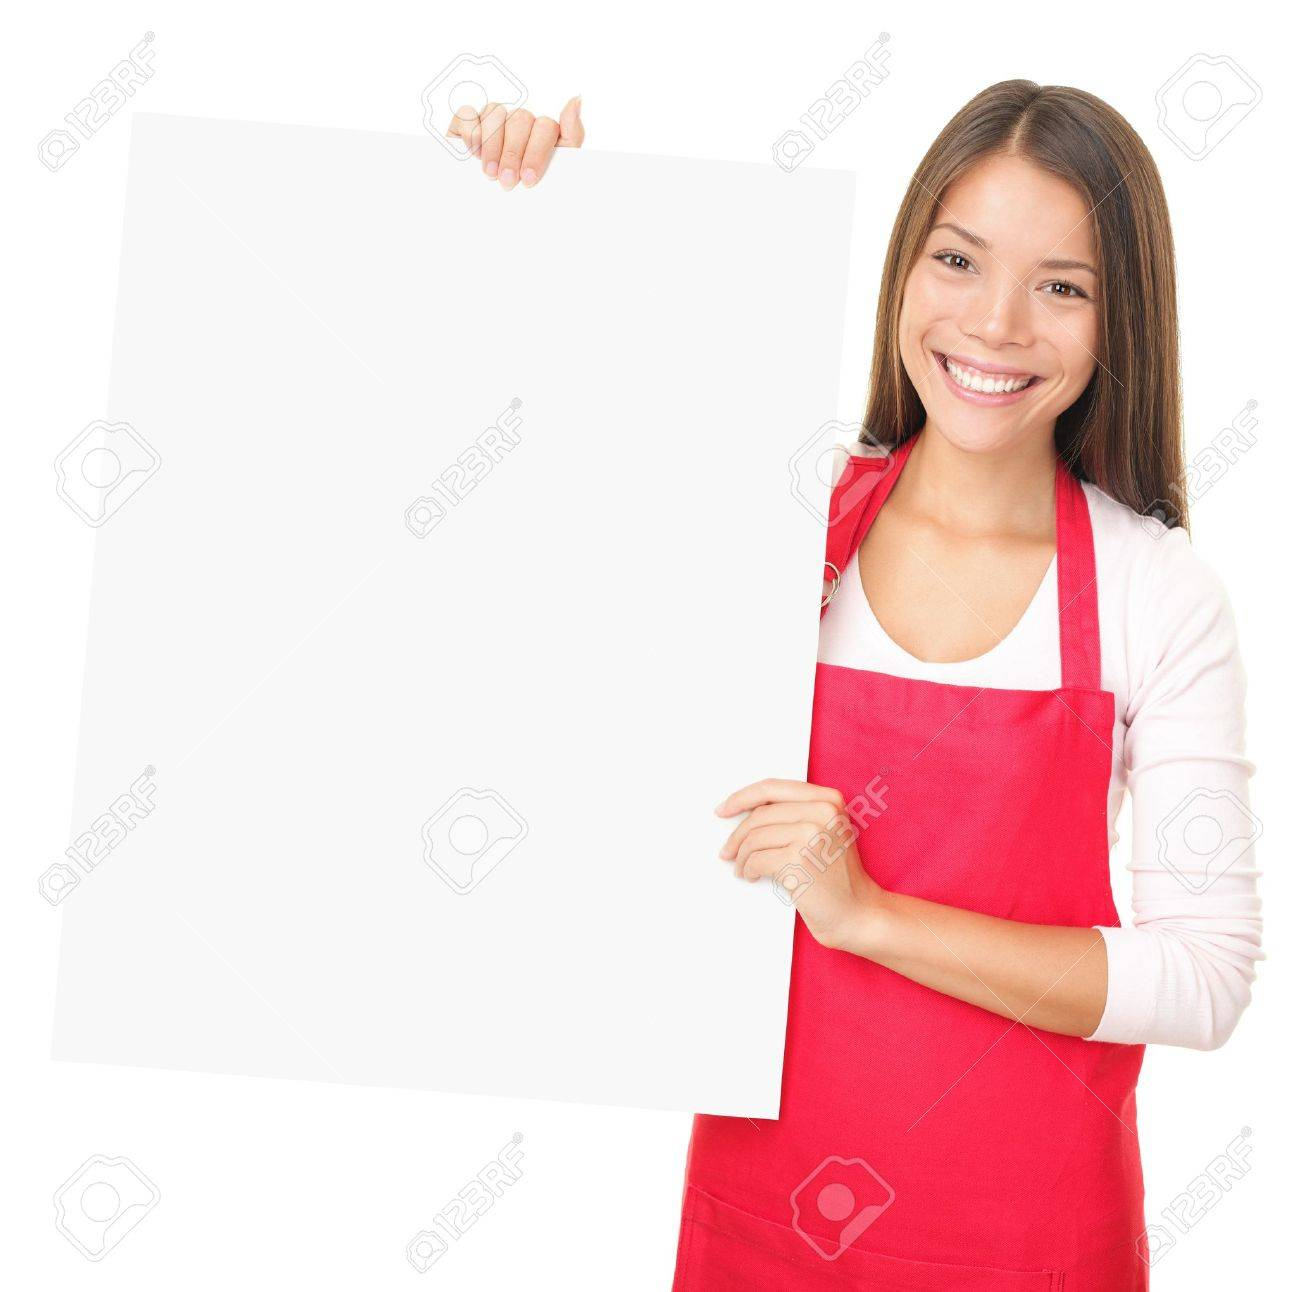 s clerk showing blank sign stock photo picture and royalty s clerk showing blank sign stock photo 8294735